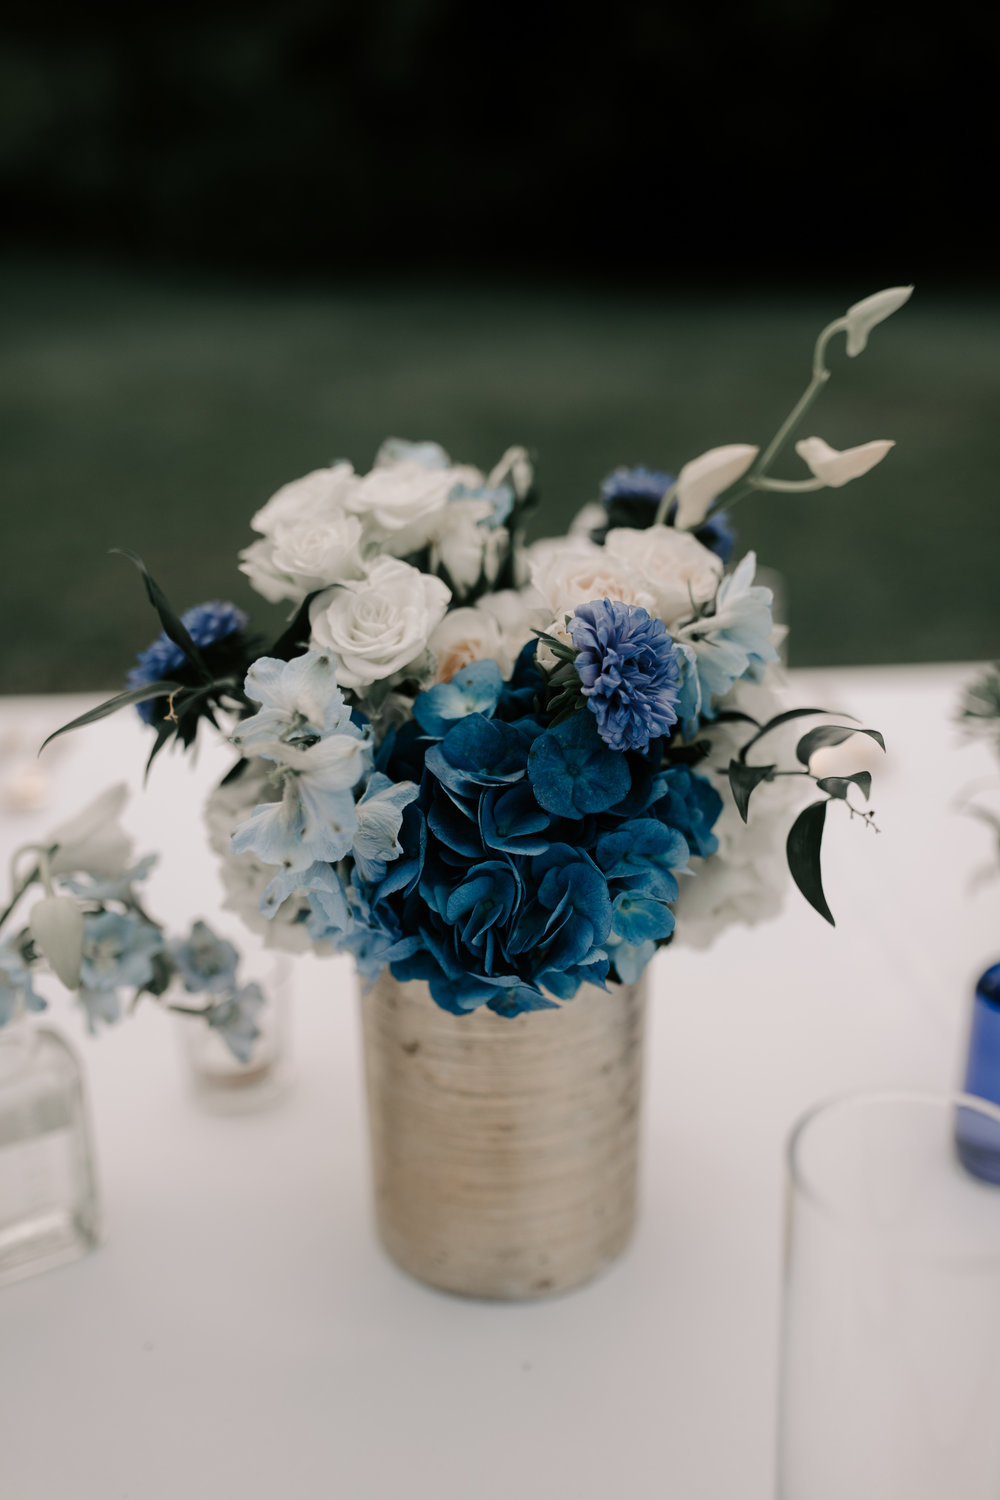 Tablescape and Florals by J'Adore Floral Designs LLC. Photography by Hawaii wedding photographer Desiree Leilani